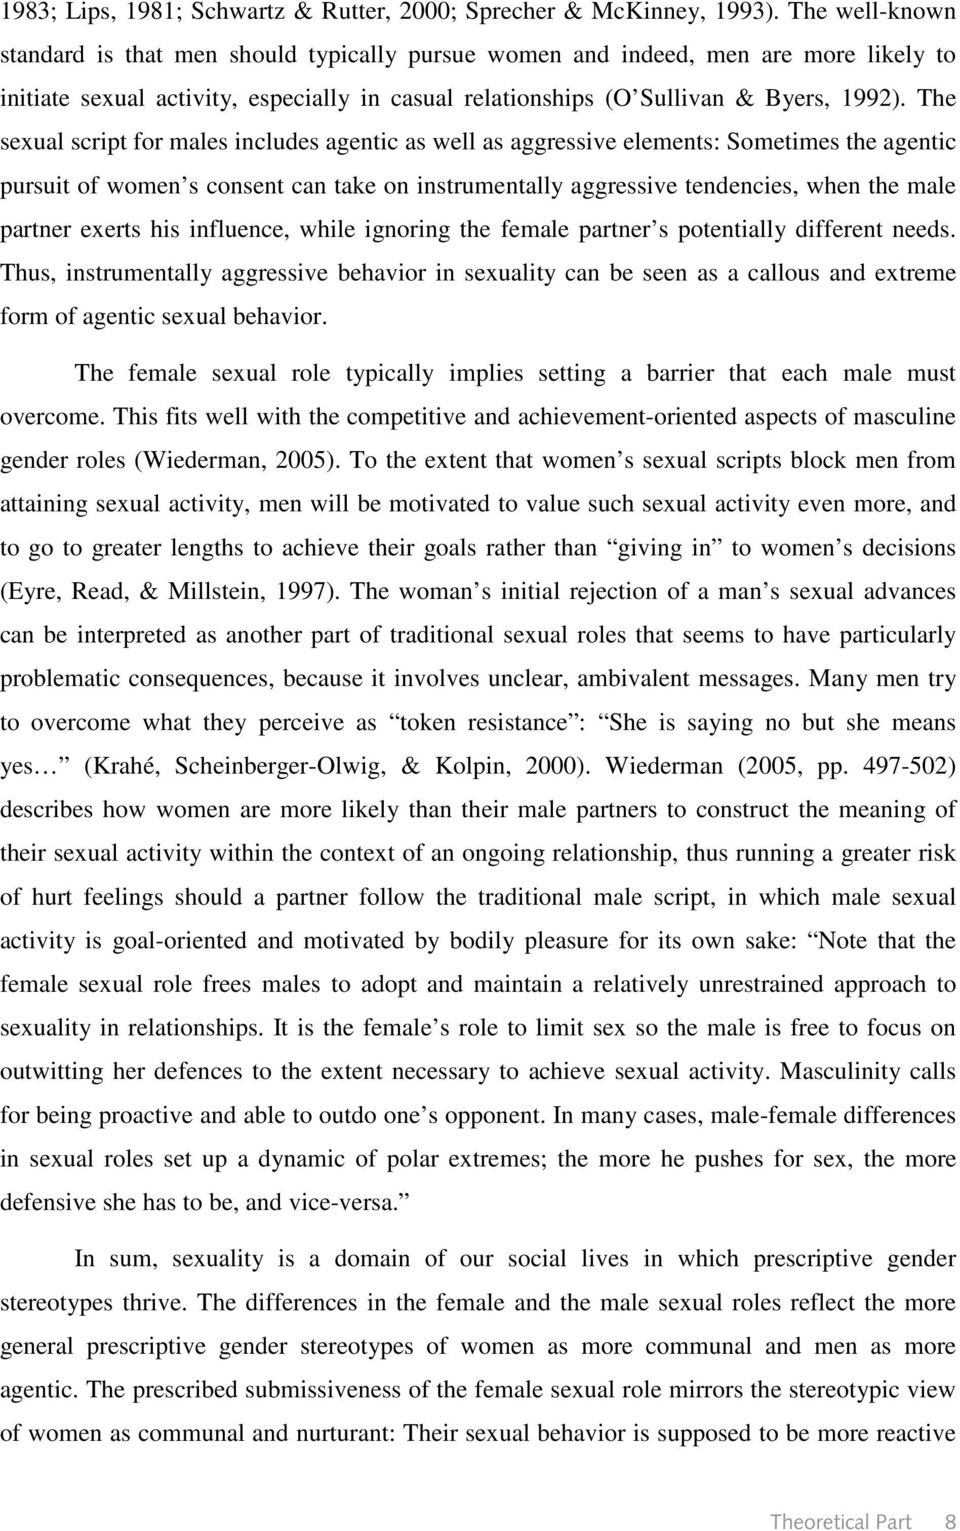 The sexual script for males includes agentic as well as aggressive elements: Sometimes the agentic pursuit of women s consent can take on instrumentally aggressive tendencies, when the male partner